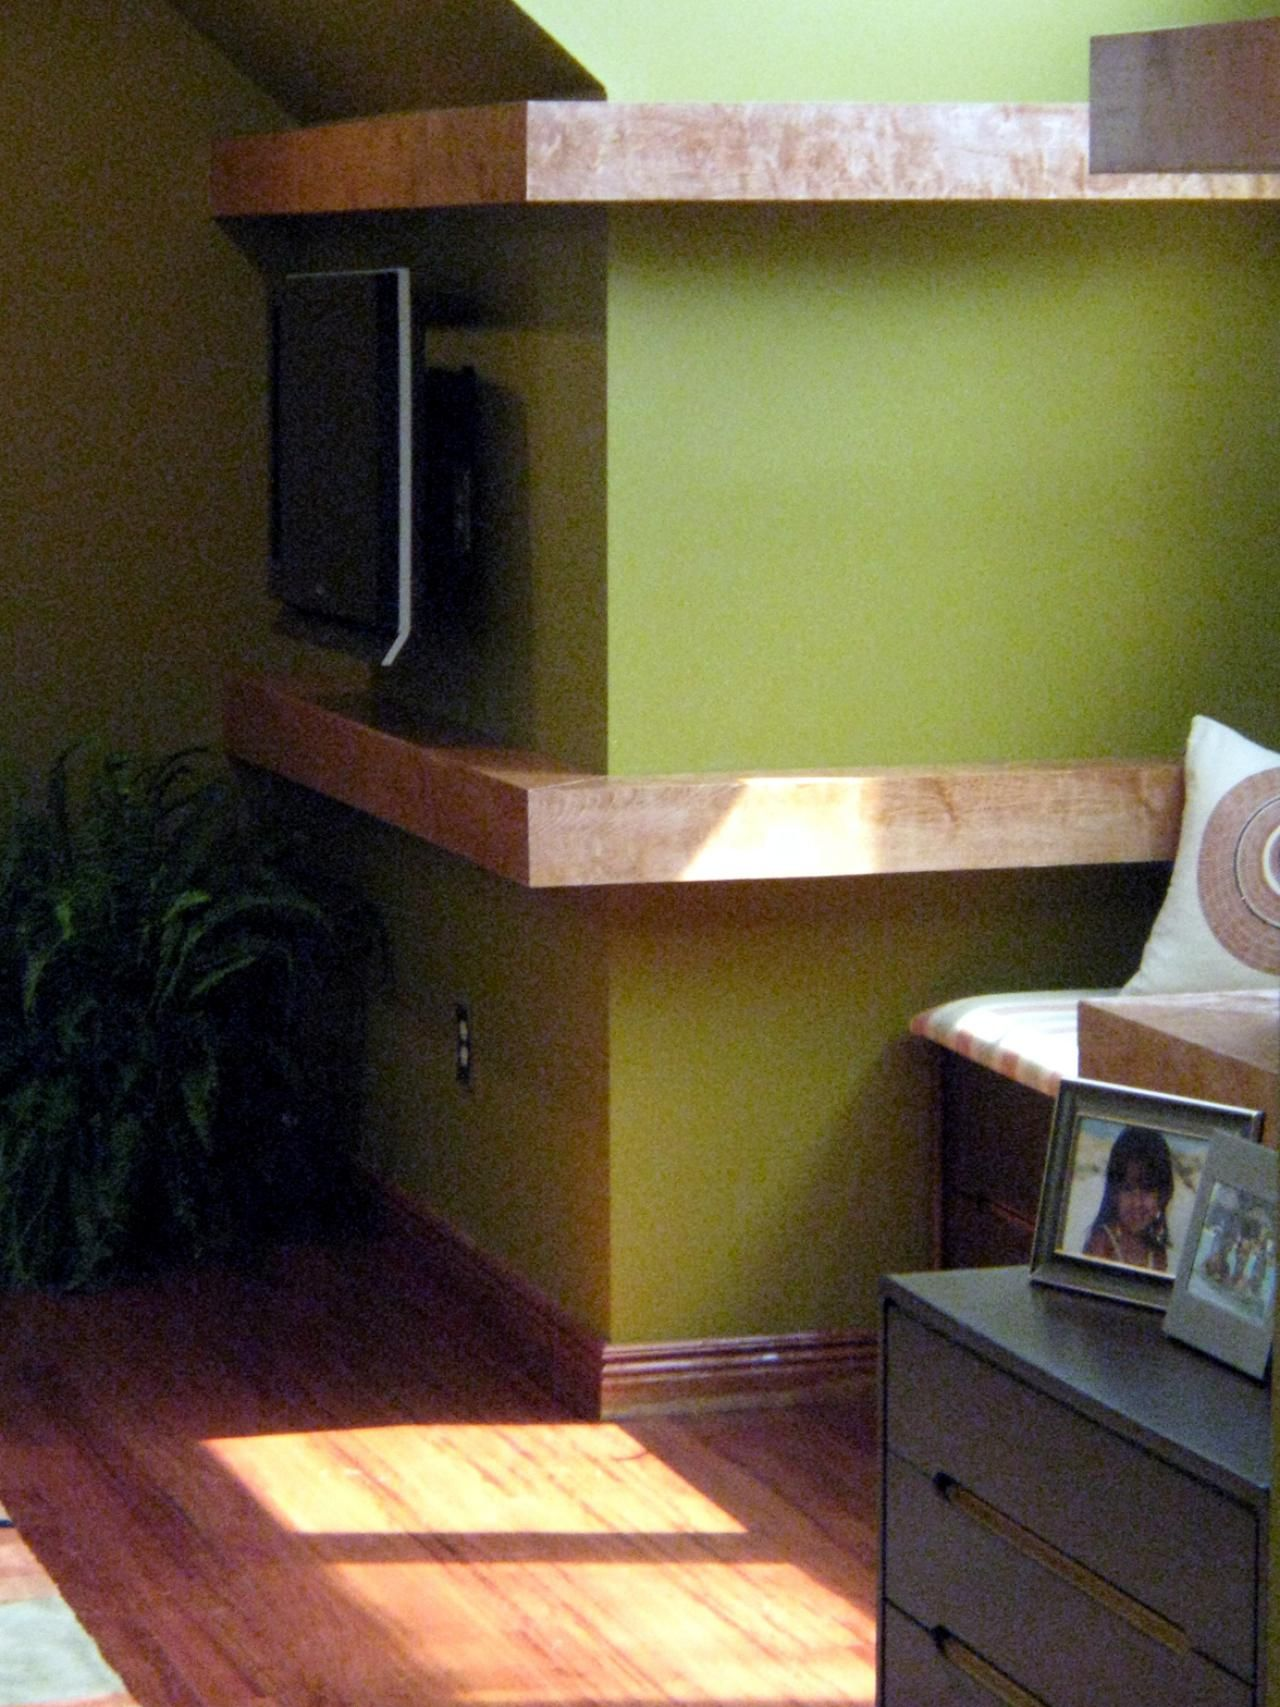 Build Floating Shelves To Wrap Around A Corner Wall | Interior .